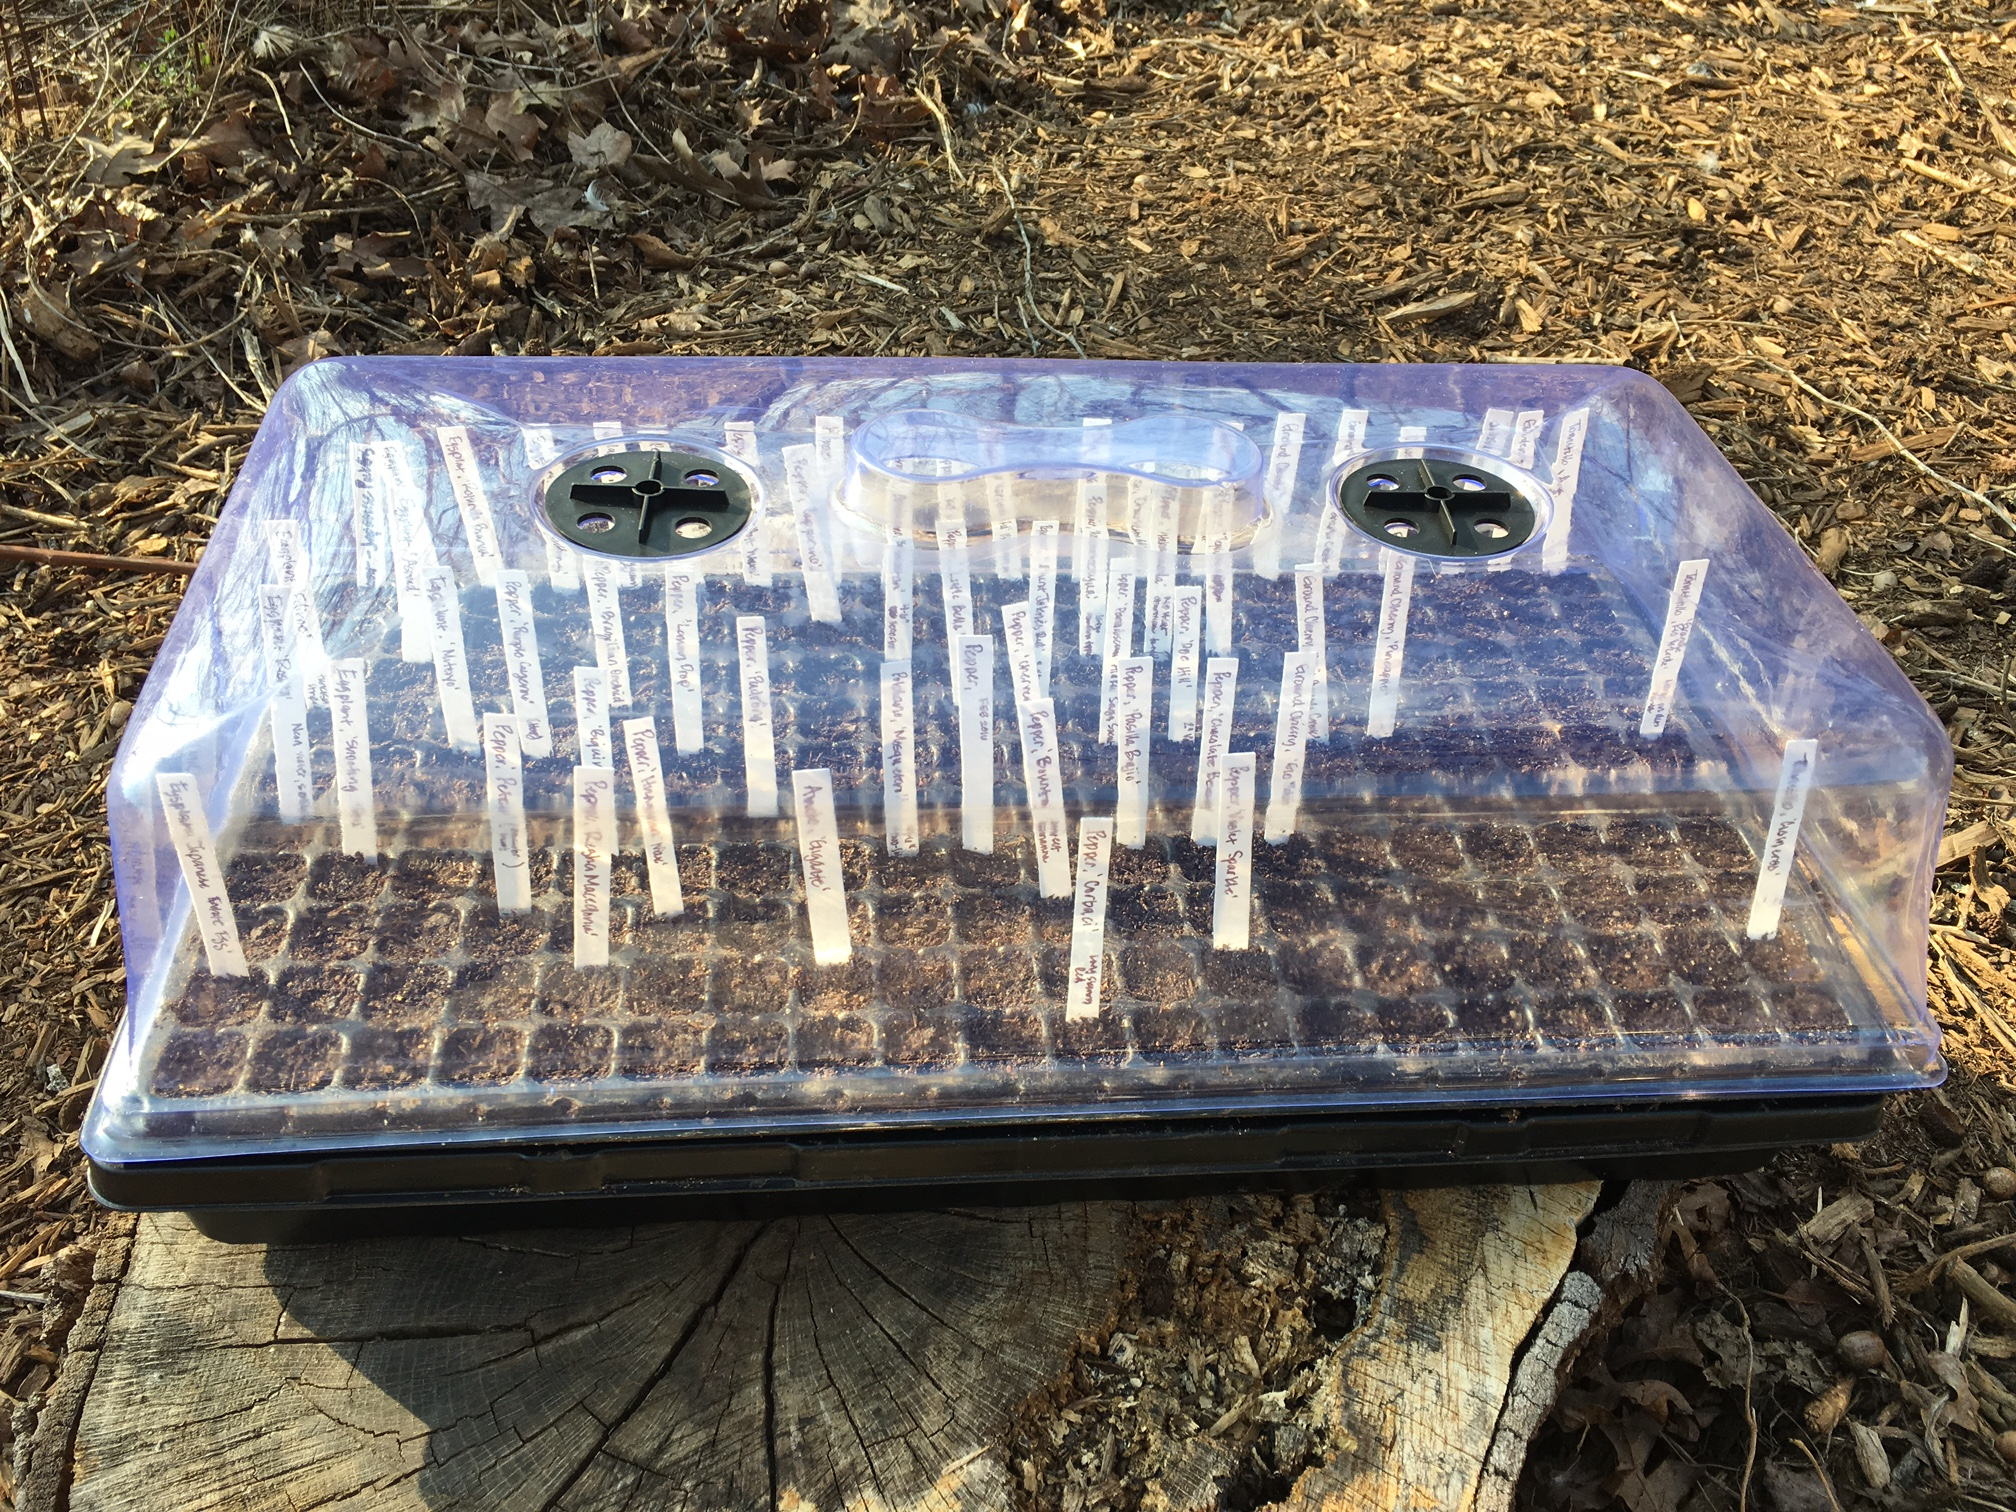 A 72 cell tray full of newly planted and labeled summer seeds. The vented humidity dome is helpful for maintaining high moisture levels inside up until your seeds germinate, but you'll want to remove it after germination to prevent fungal diseases like damping off.